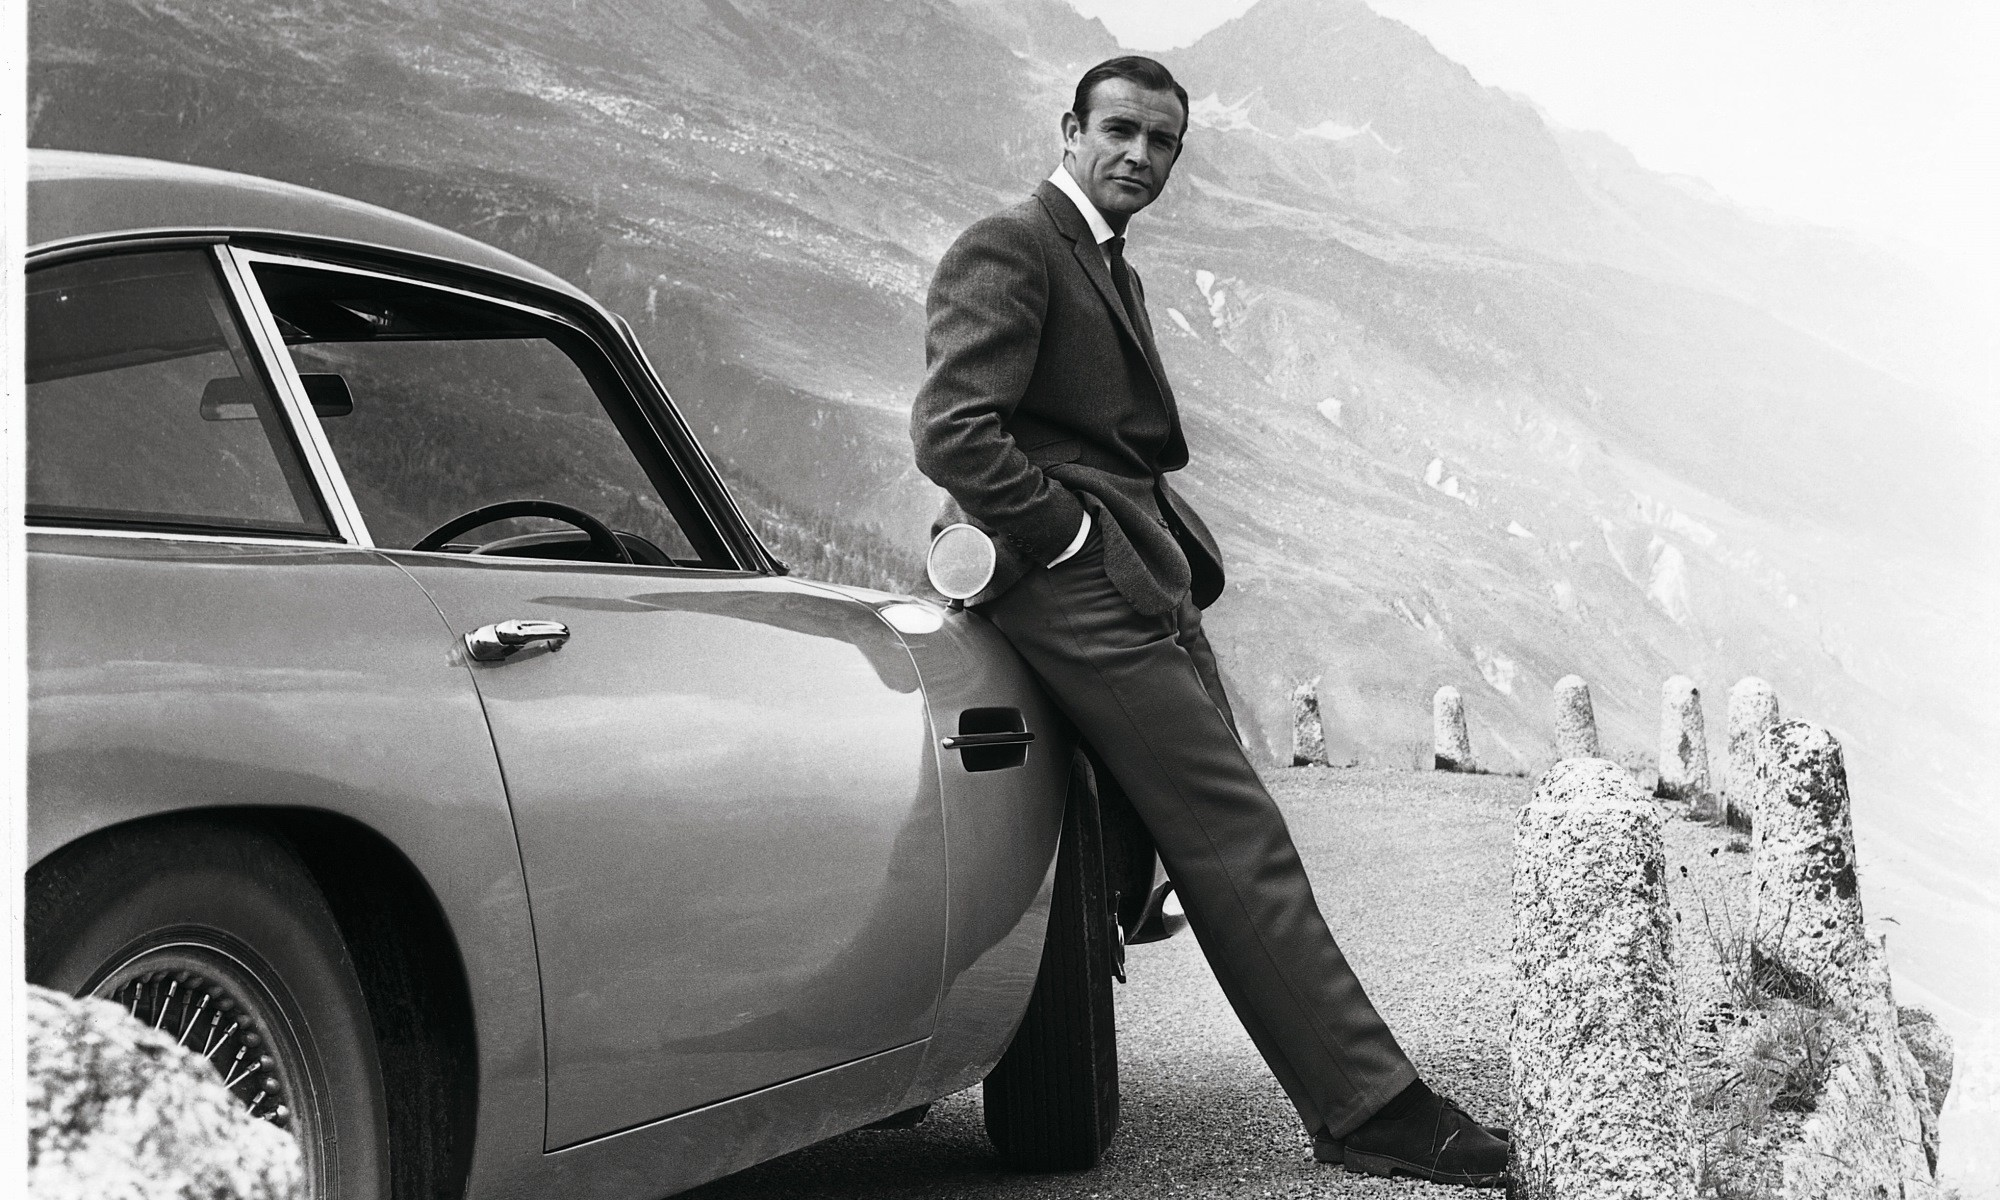 Sean Connery as James Bond with the Aston Martin DB5